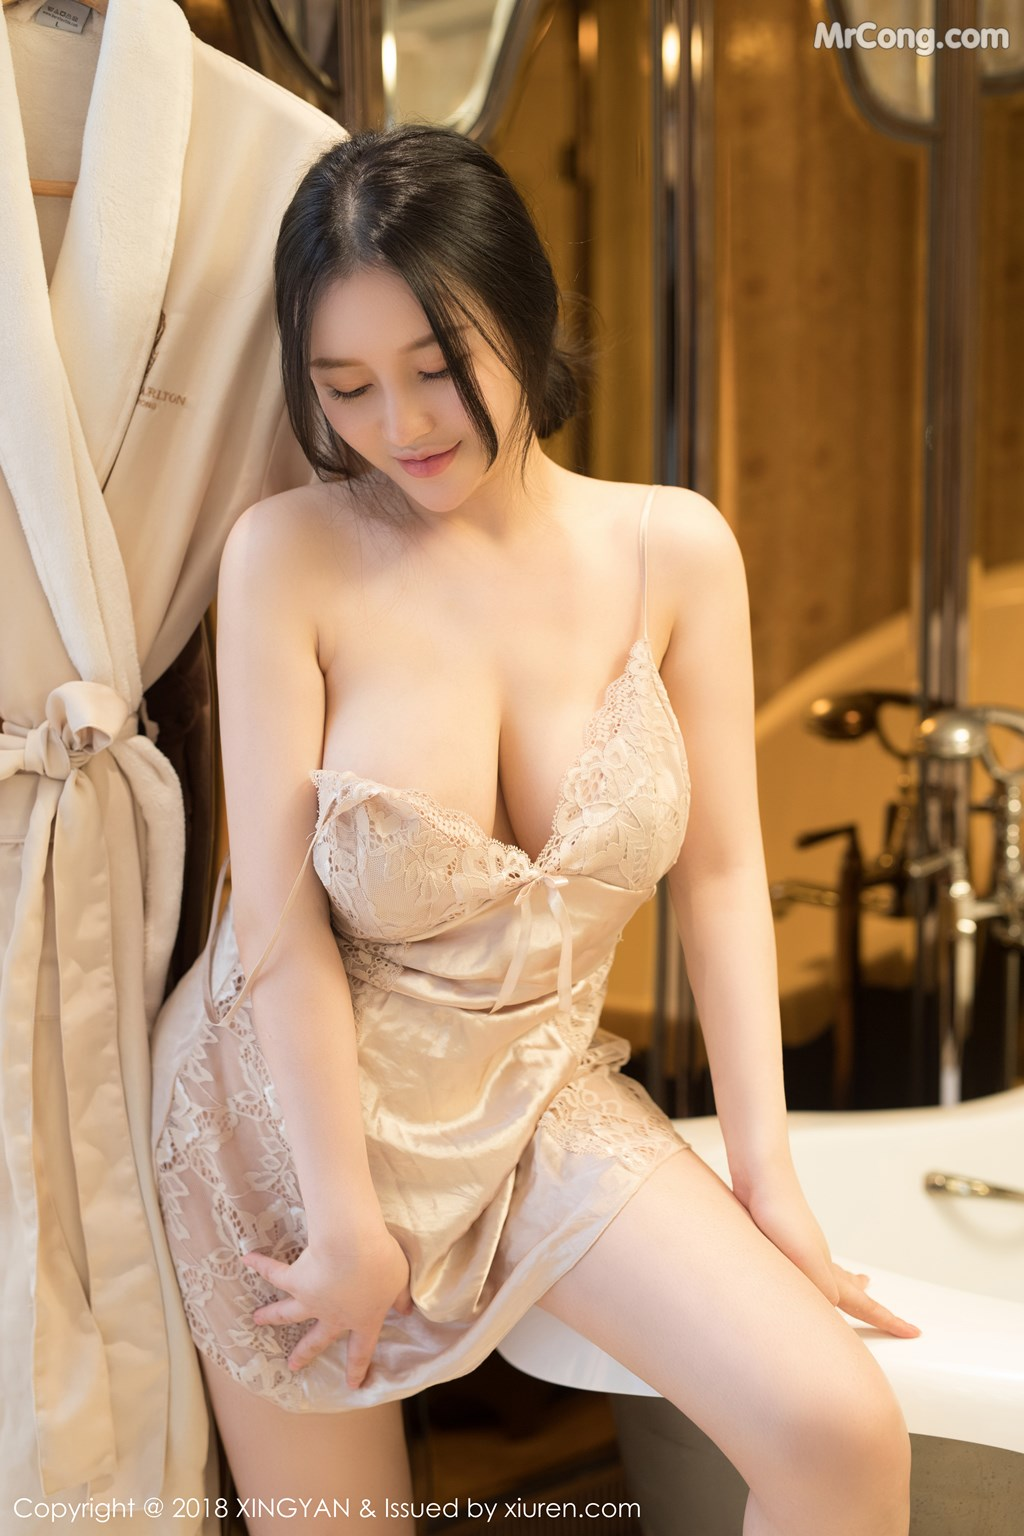 anh-sexy-6